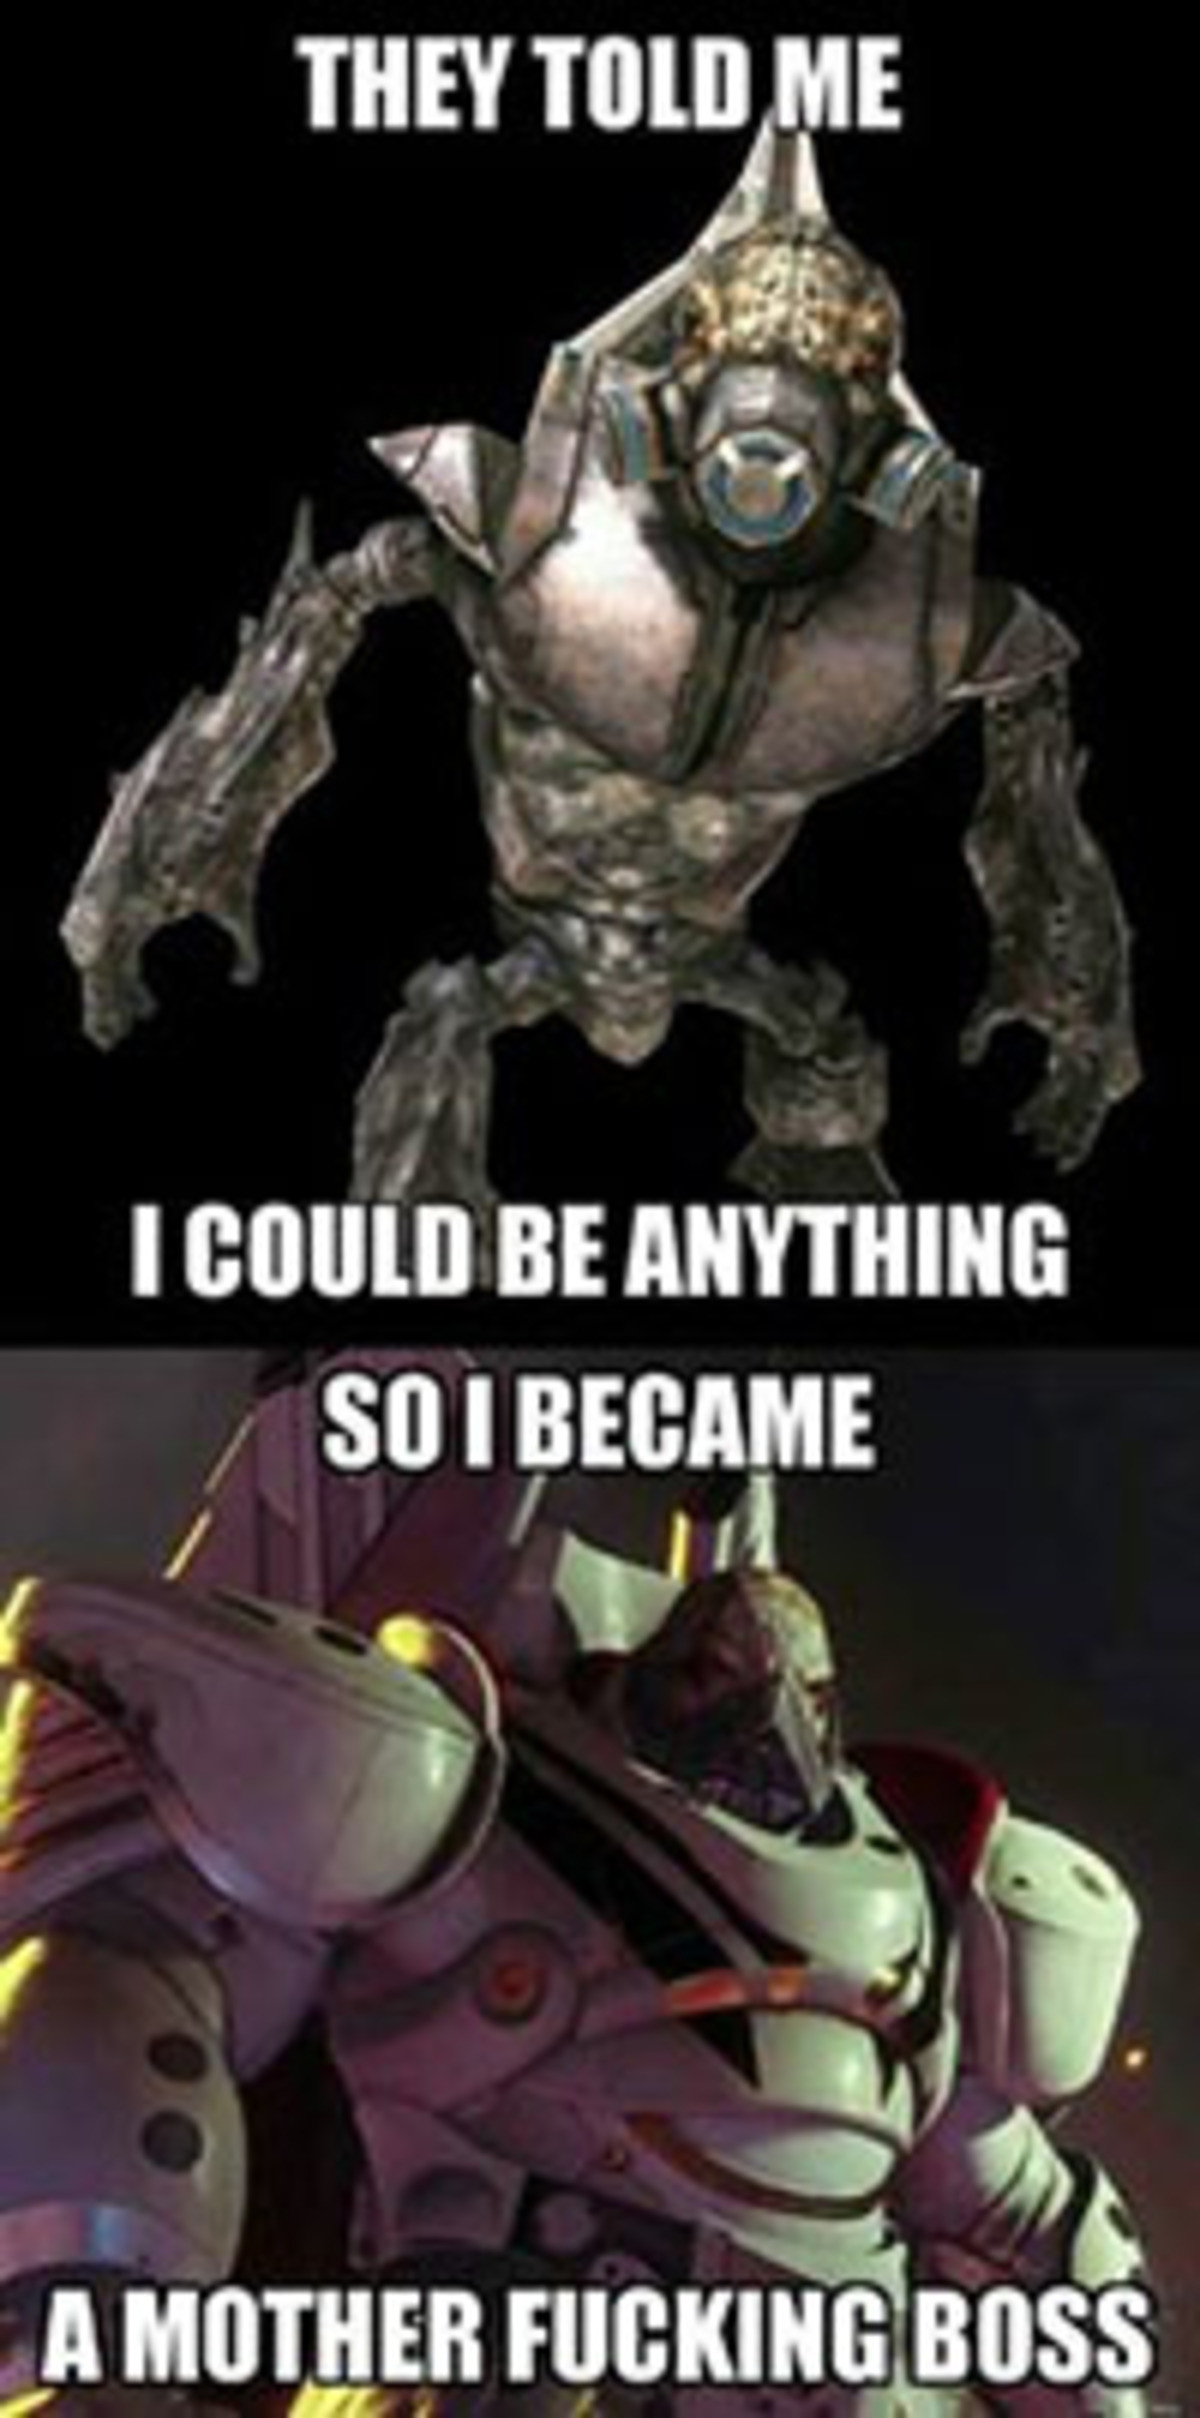 Destiny 2 Meme. Just some meme I came up with when first playing Destiny 2... it's good to finally see bane in a main villain role in gaming